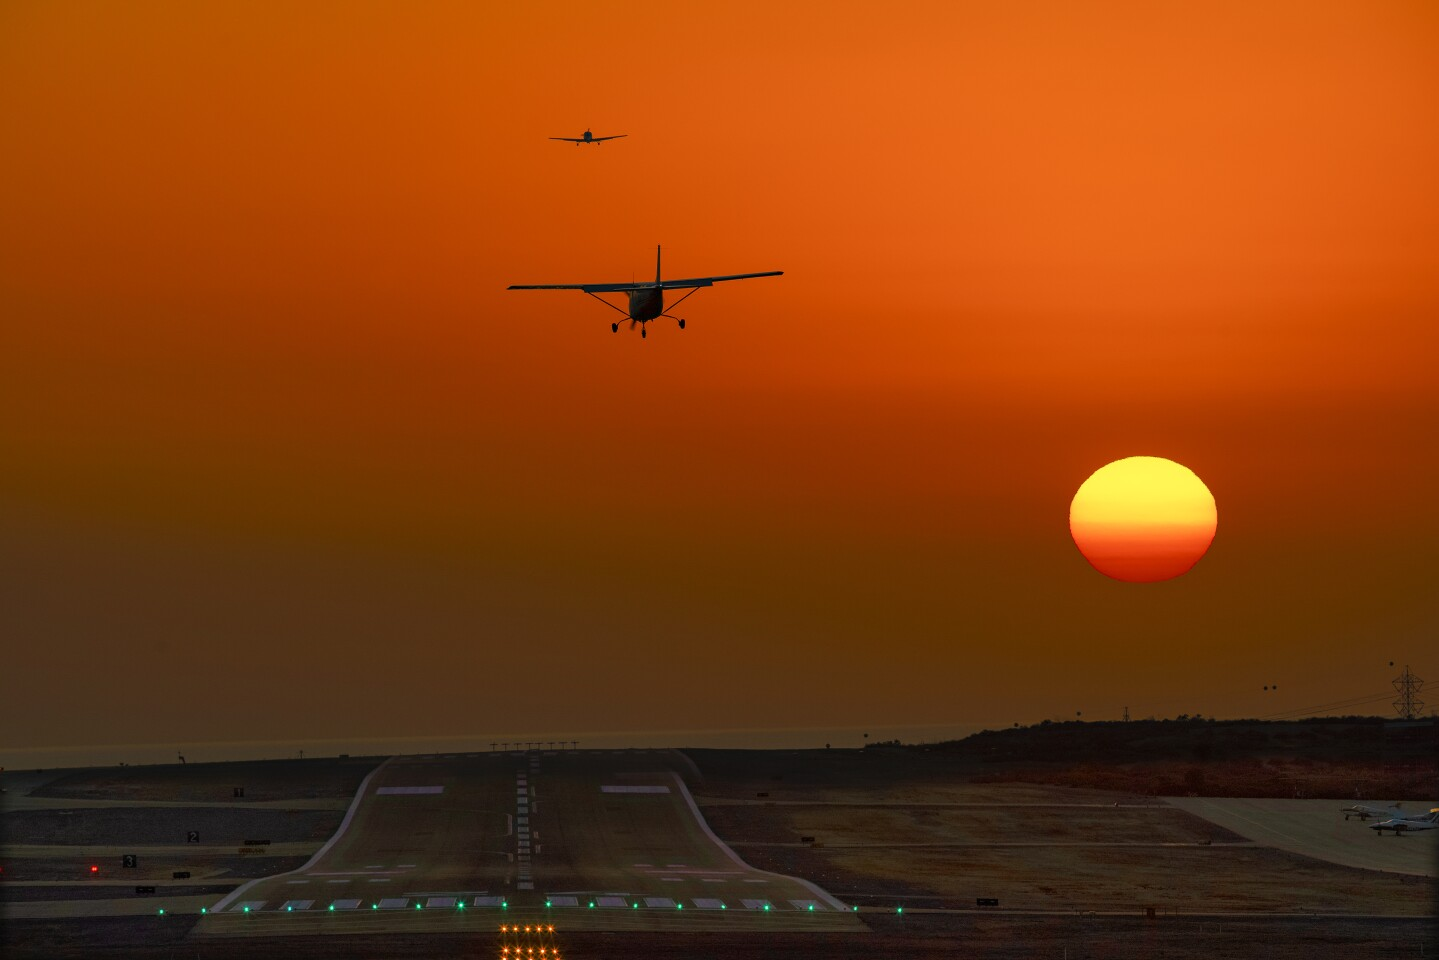 Two small aircrafts fly above the runway at Palomar Airport in Carlsbad during an October sunset.